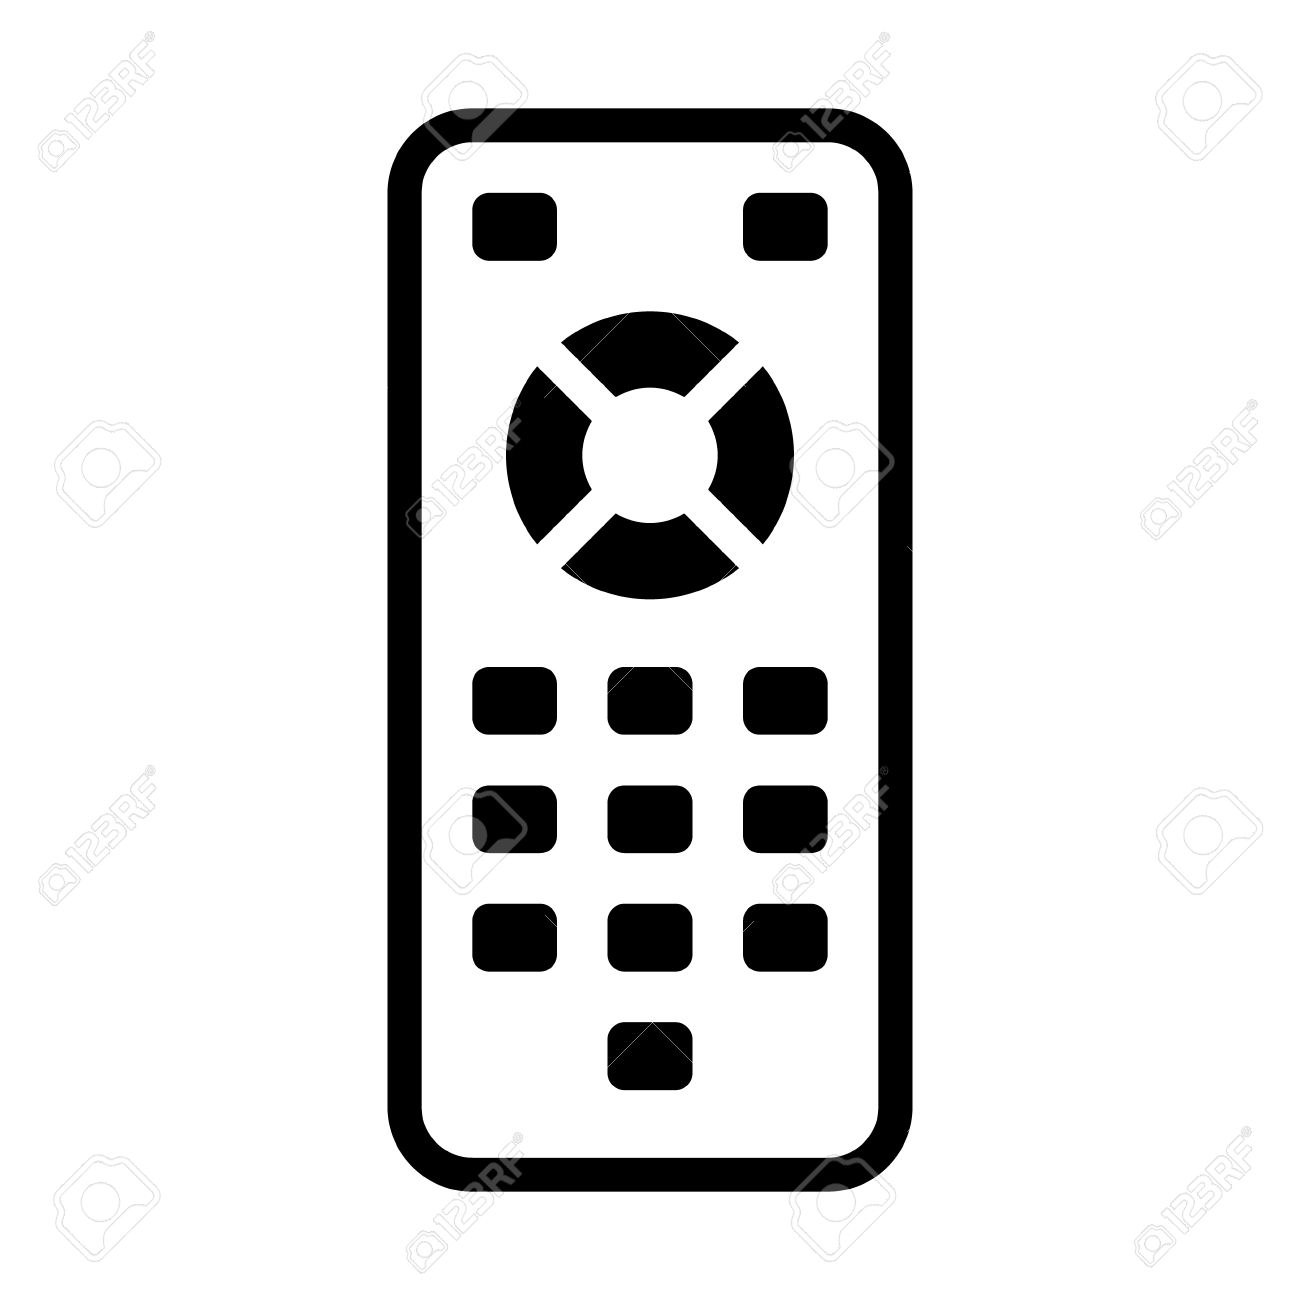 TV remote control line art icon for apps and websites - 50764932